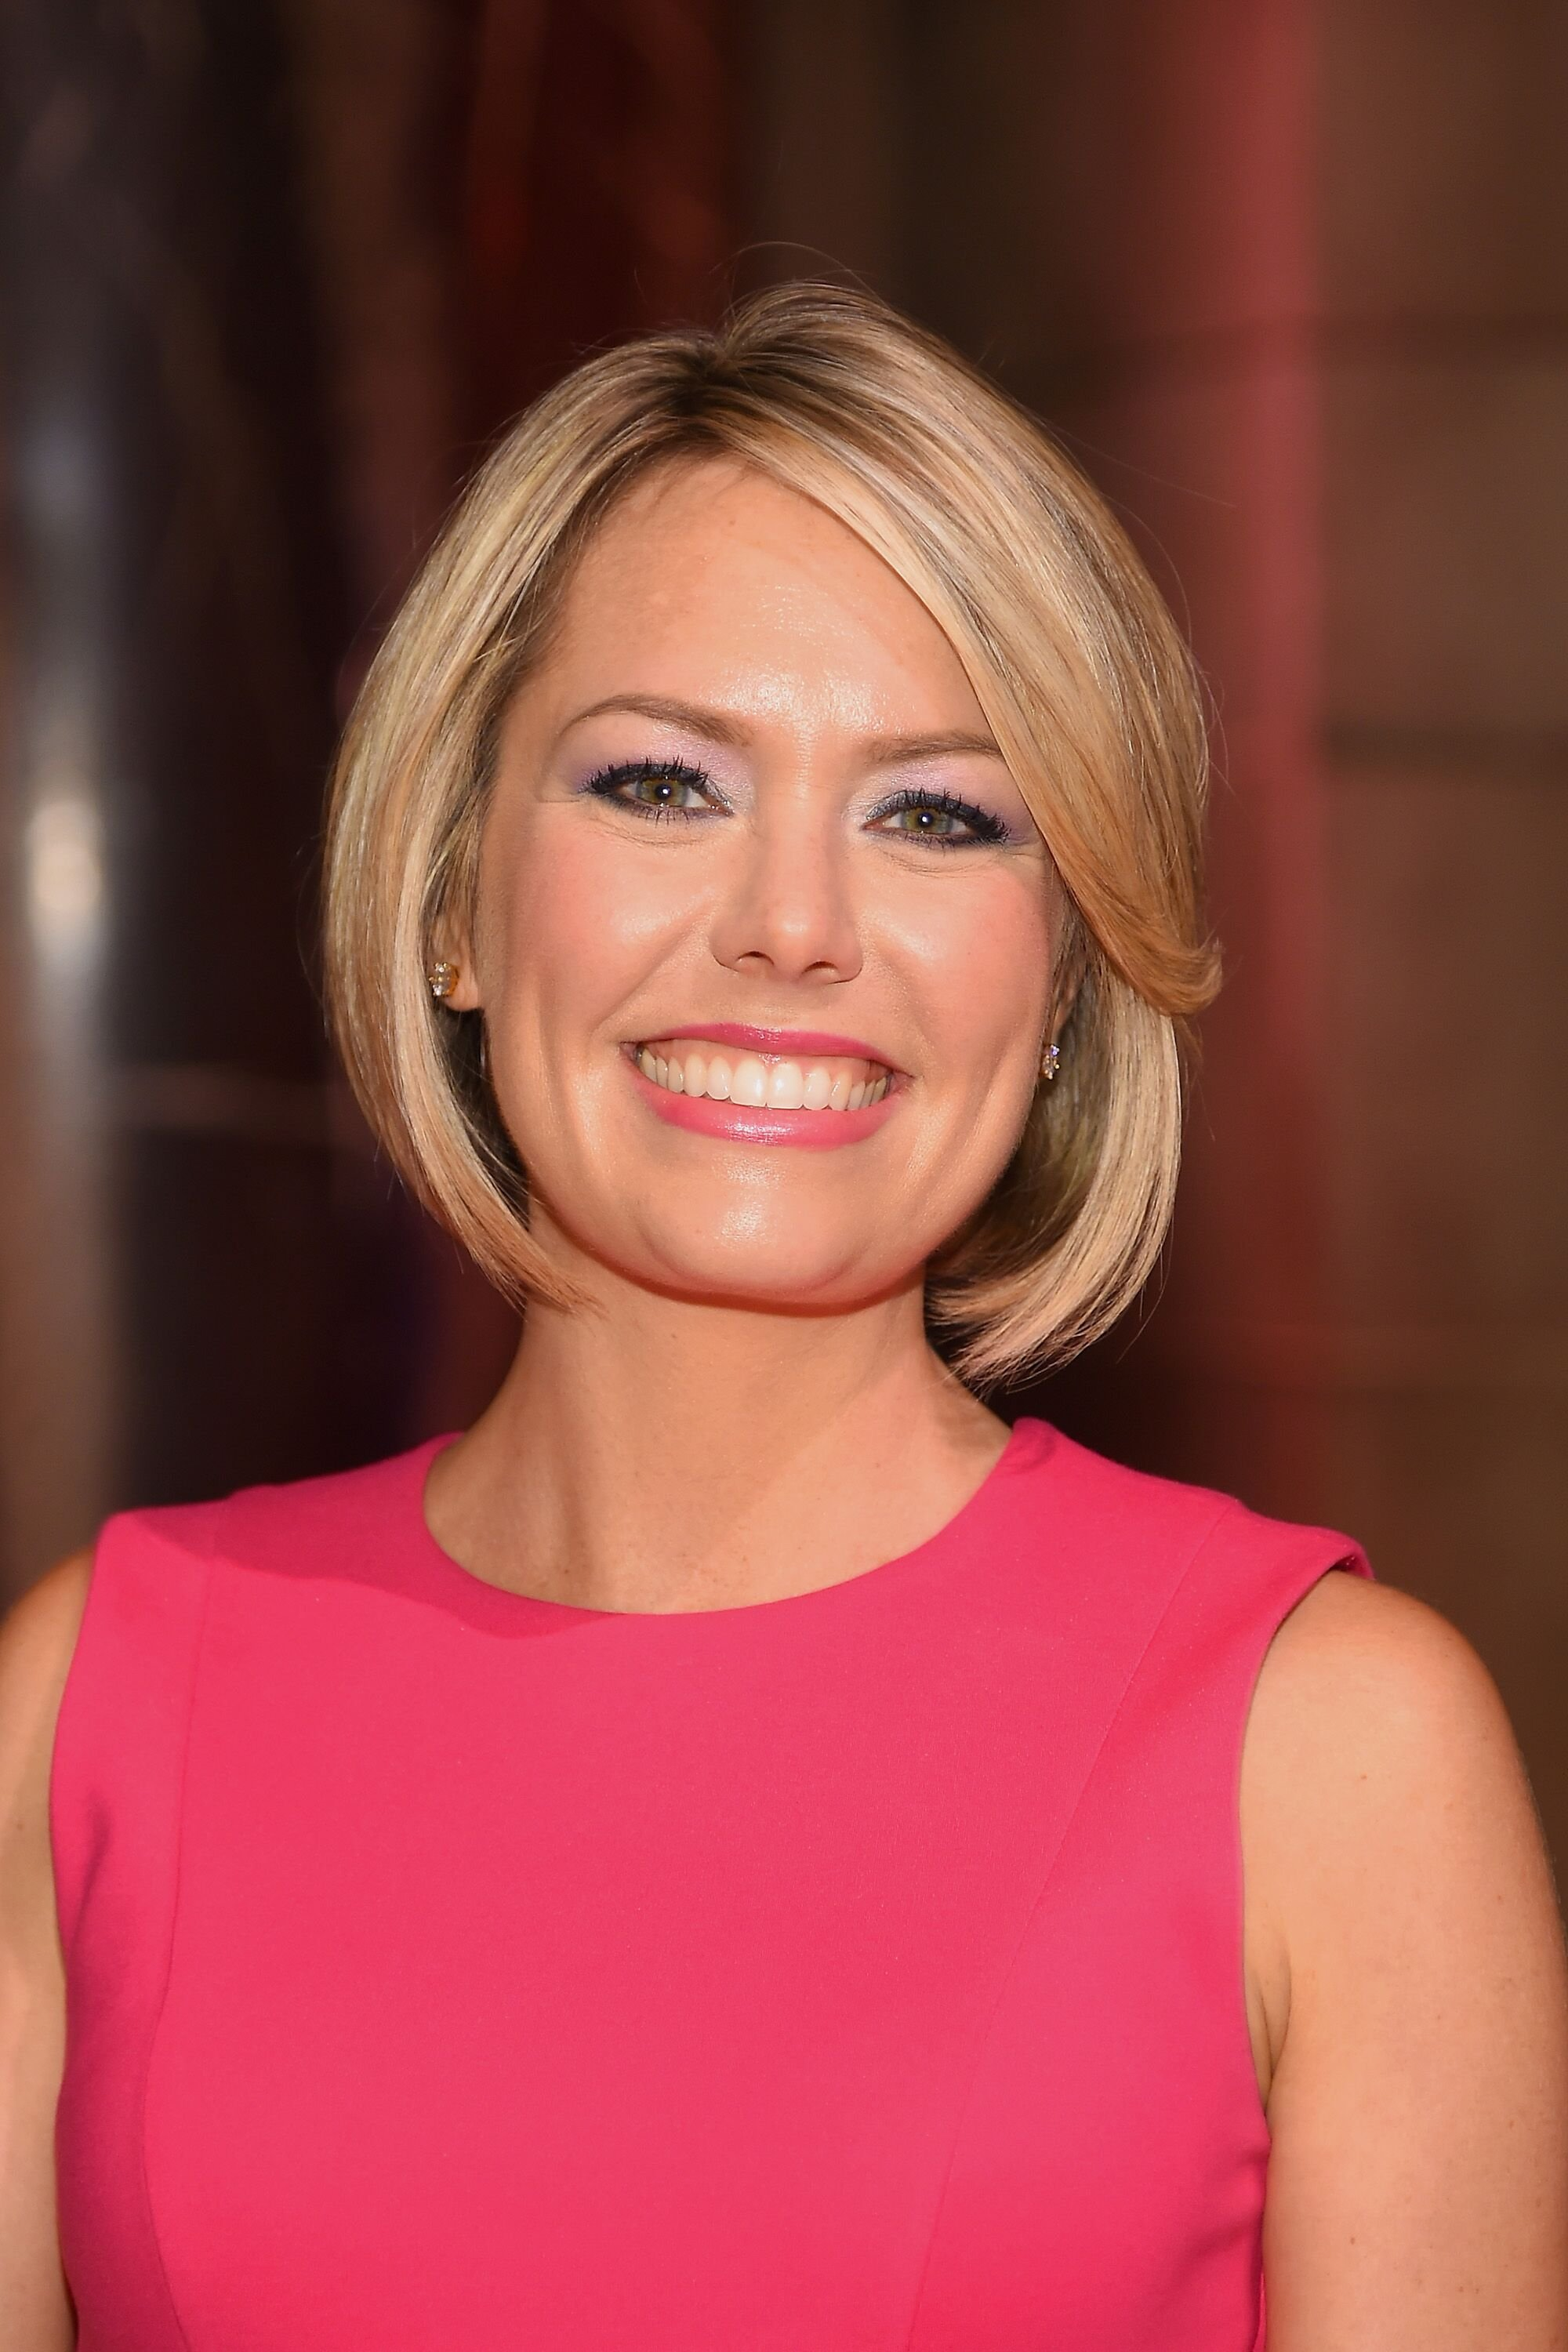 Dylan Dreyer attends the 42nd Annual Gracie Awards Luncheon at Cipriani 42nd Street on June 27, 2017 in New York City.   Photo: Getty Images